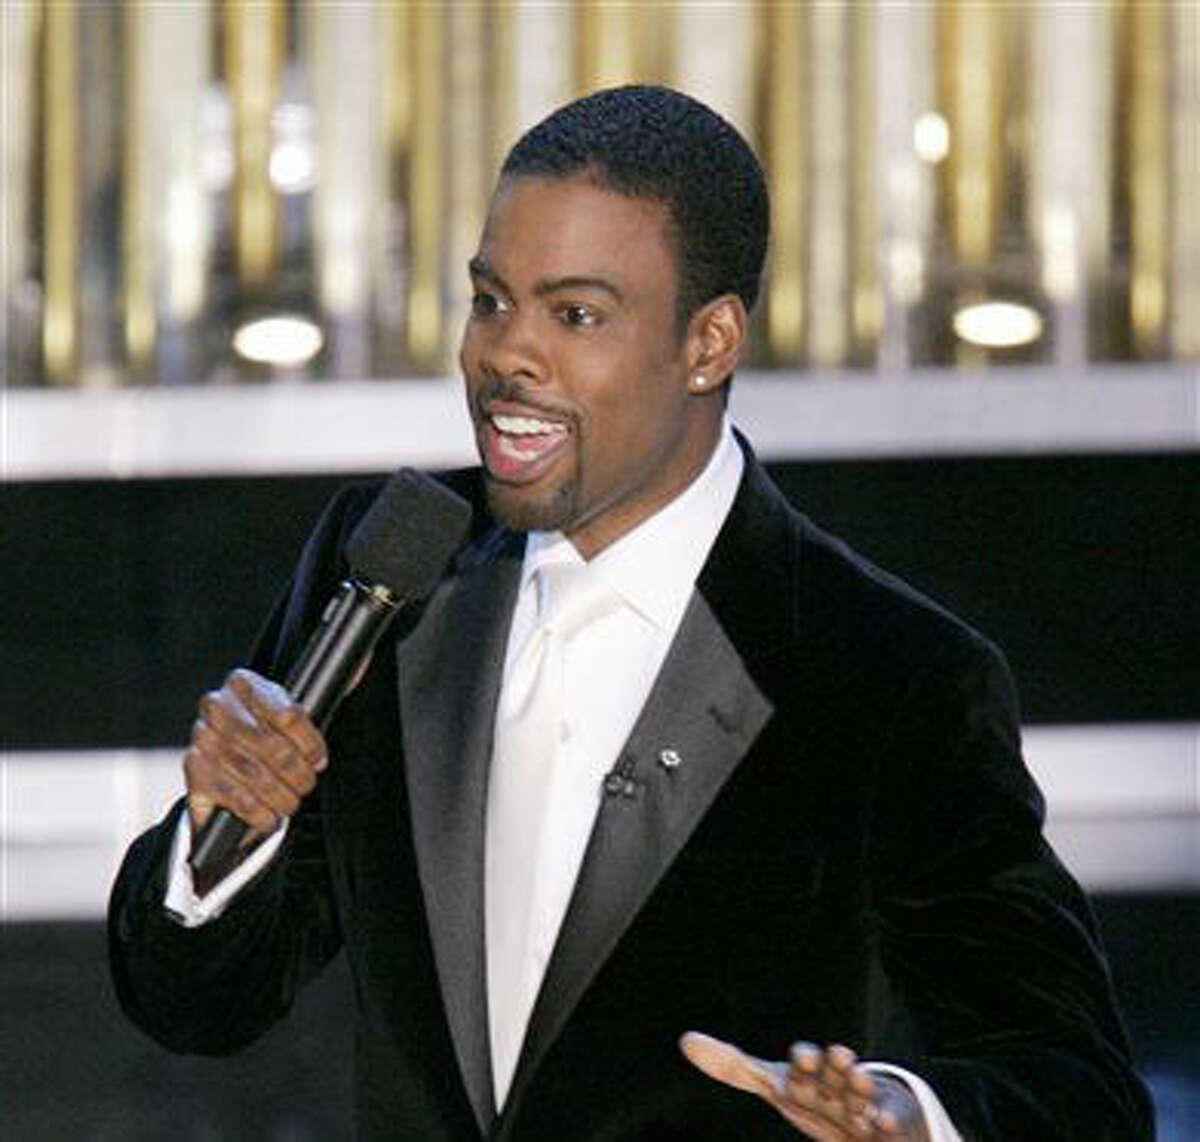 FILE - In this Feb. 27, 2005 file photo, Chris Rock hosts the 77th Academy Awards telecast in Los Angeles. Rock will return to host the Oscars for a second time. The show's producers say the prolific comedian-filmmaker will be at the helm for the 88th Academy Awards next February 28. (AP Photo/Mark J. Terrill, File)